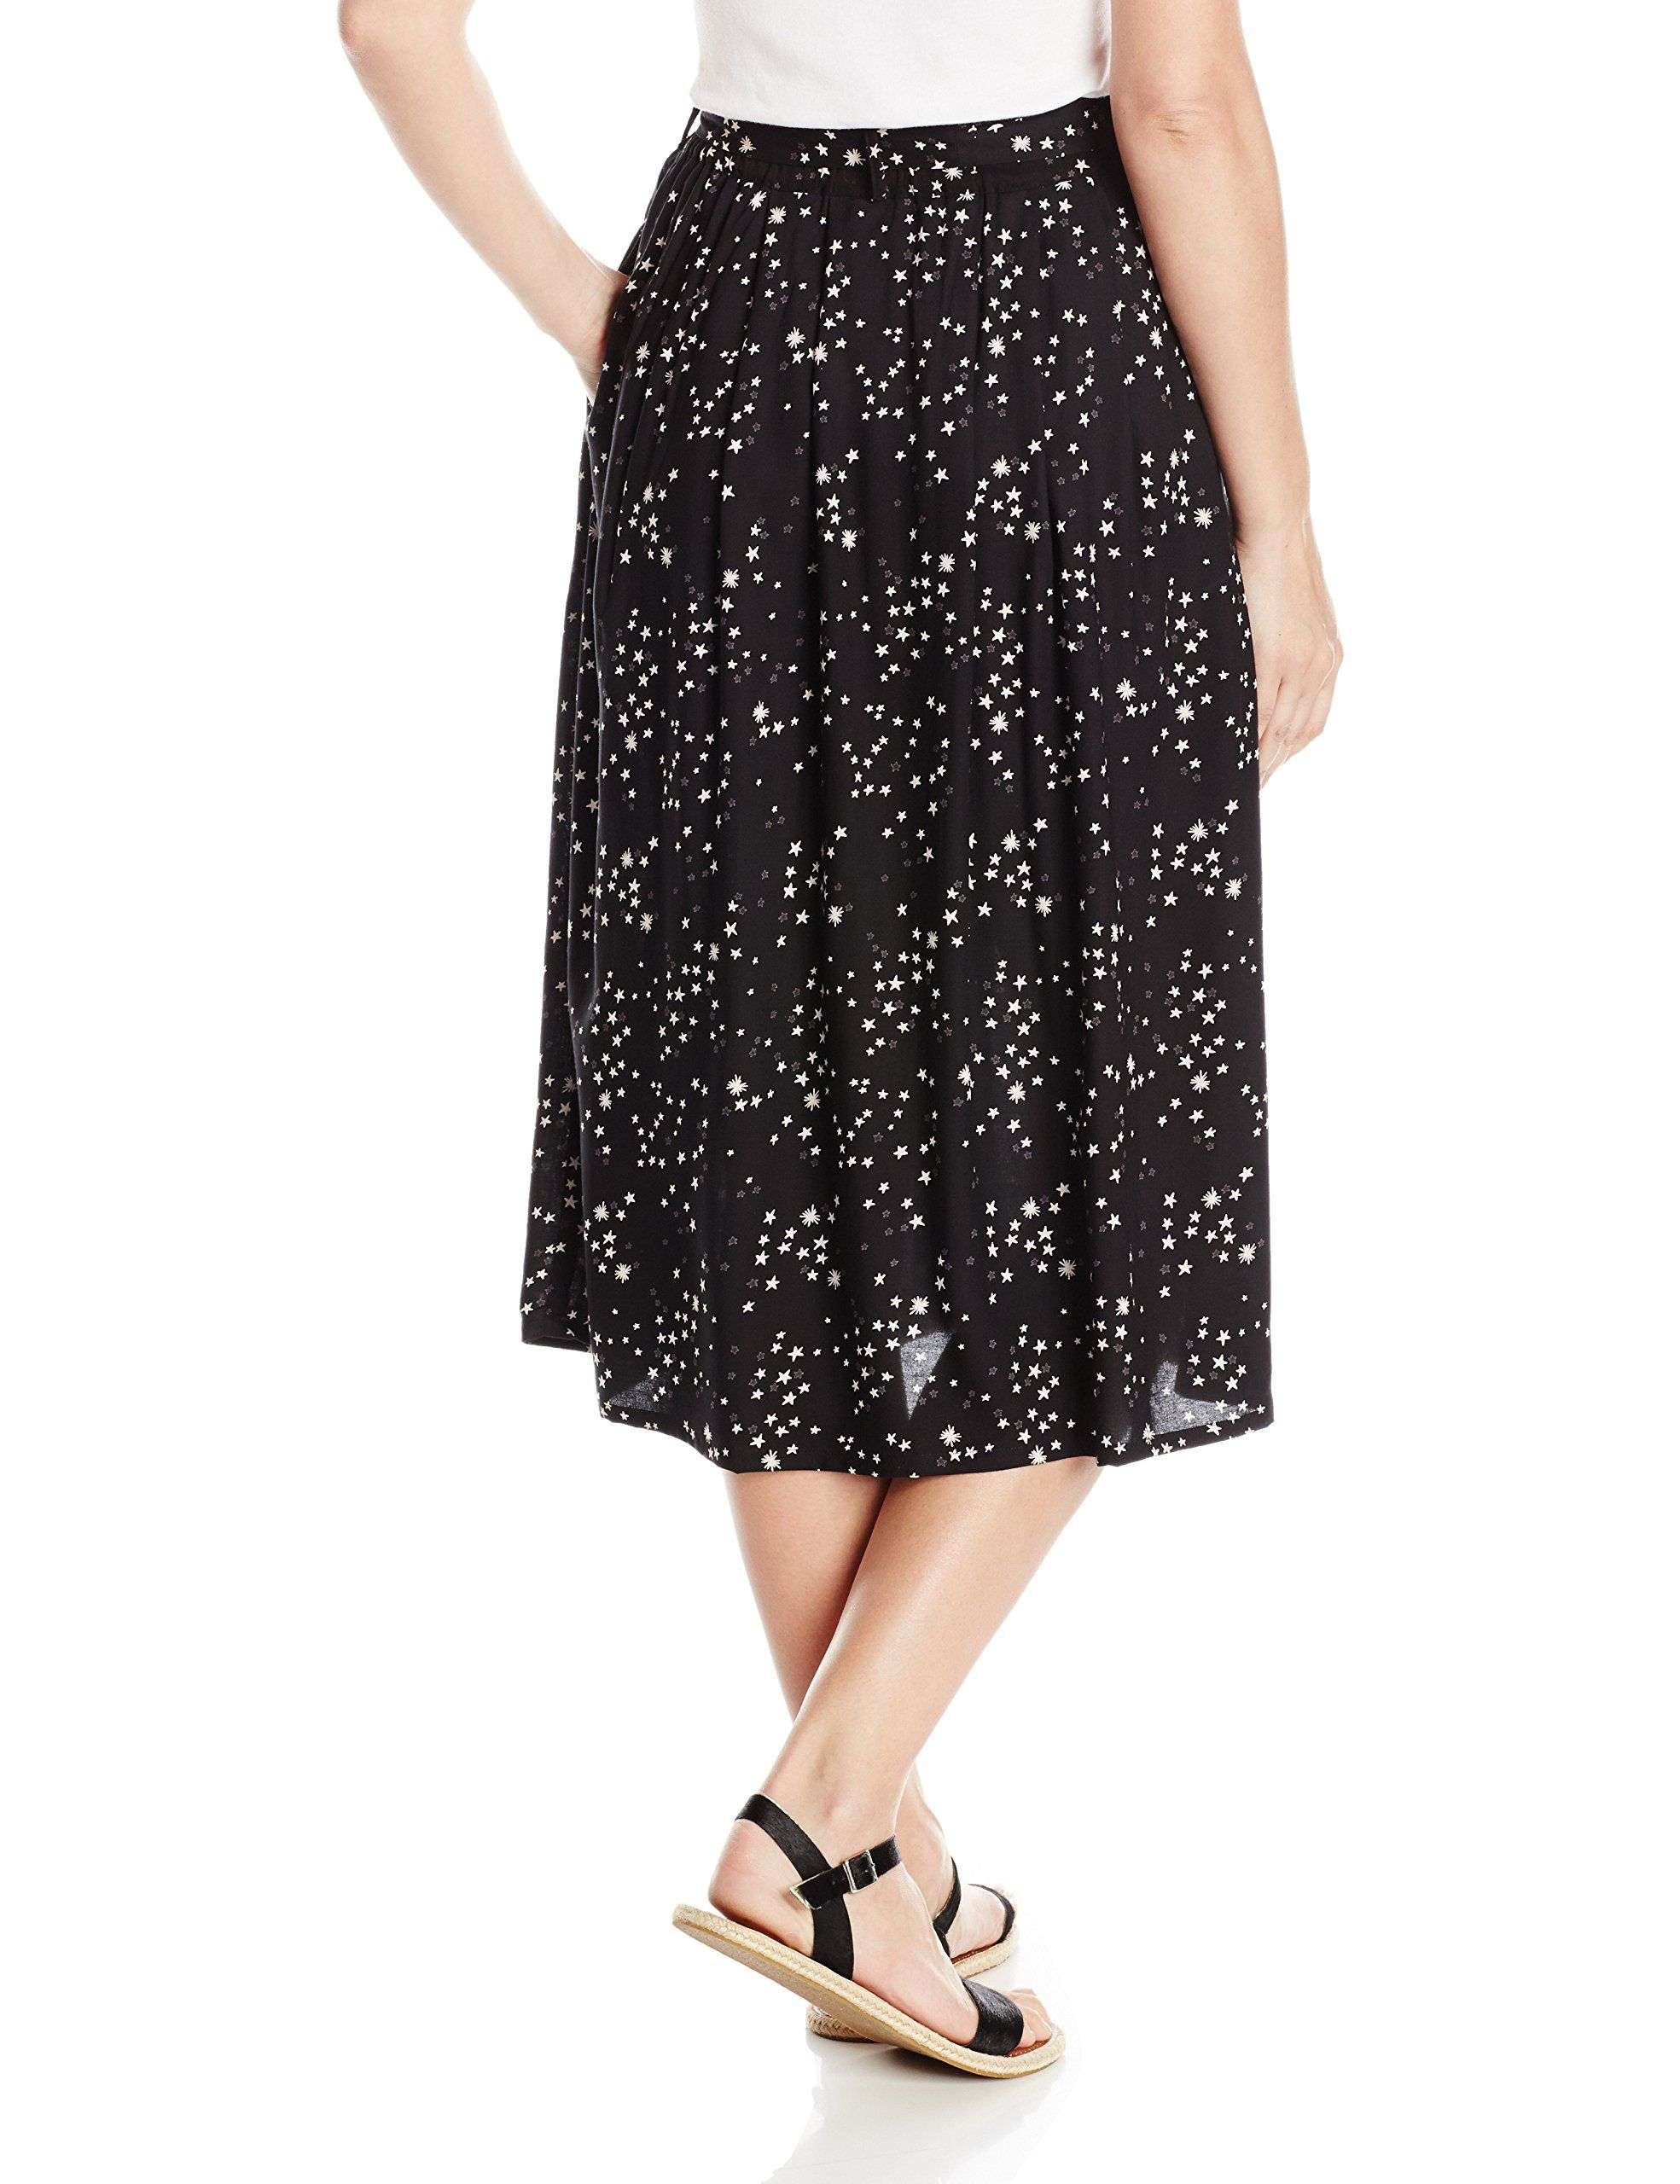 c71488d53 Angie Womens Star Printed Midi Skirt with Tie Waist Black Small -- You  could discover